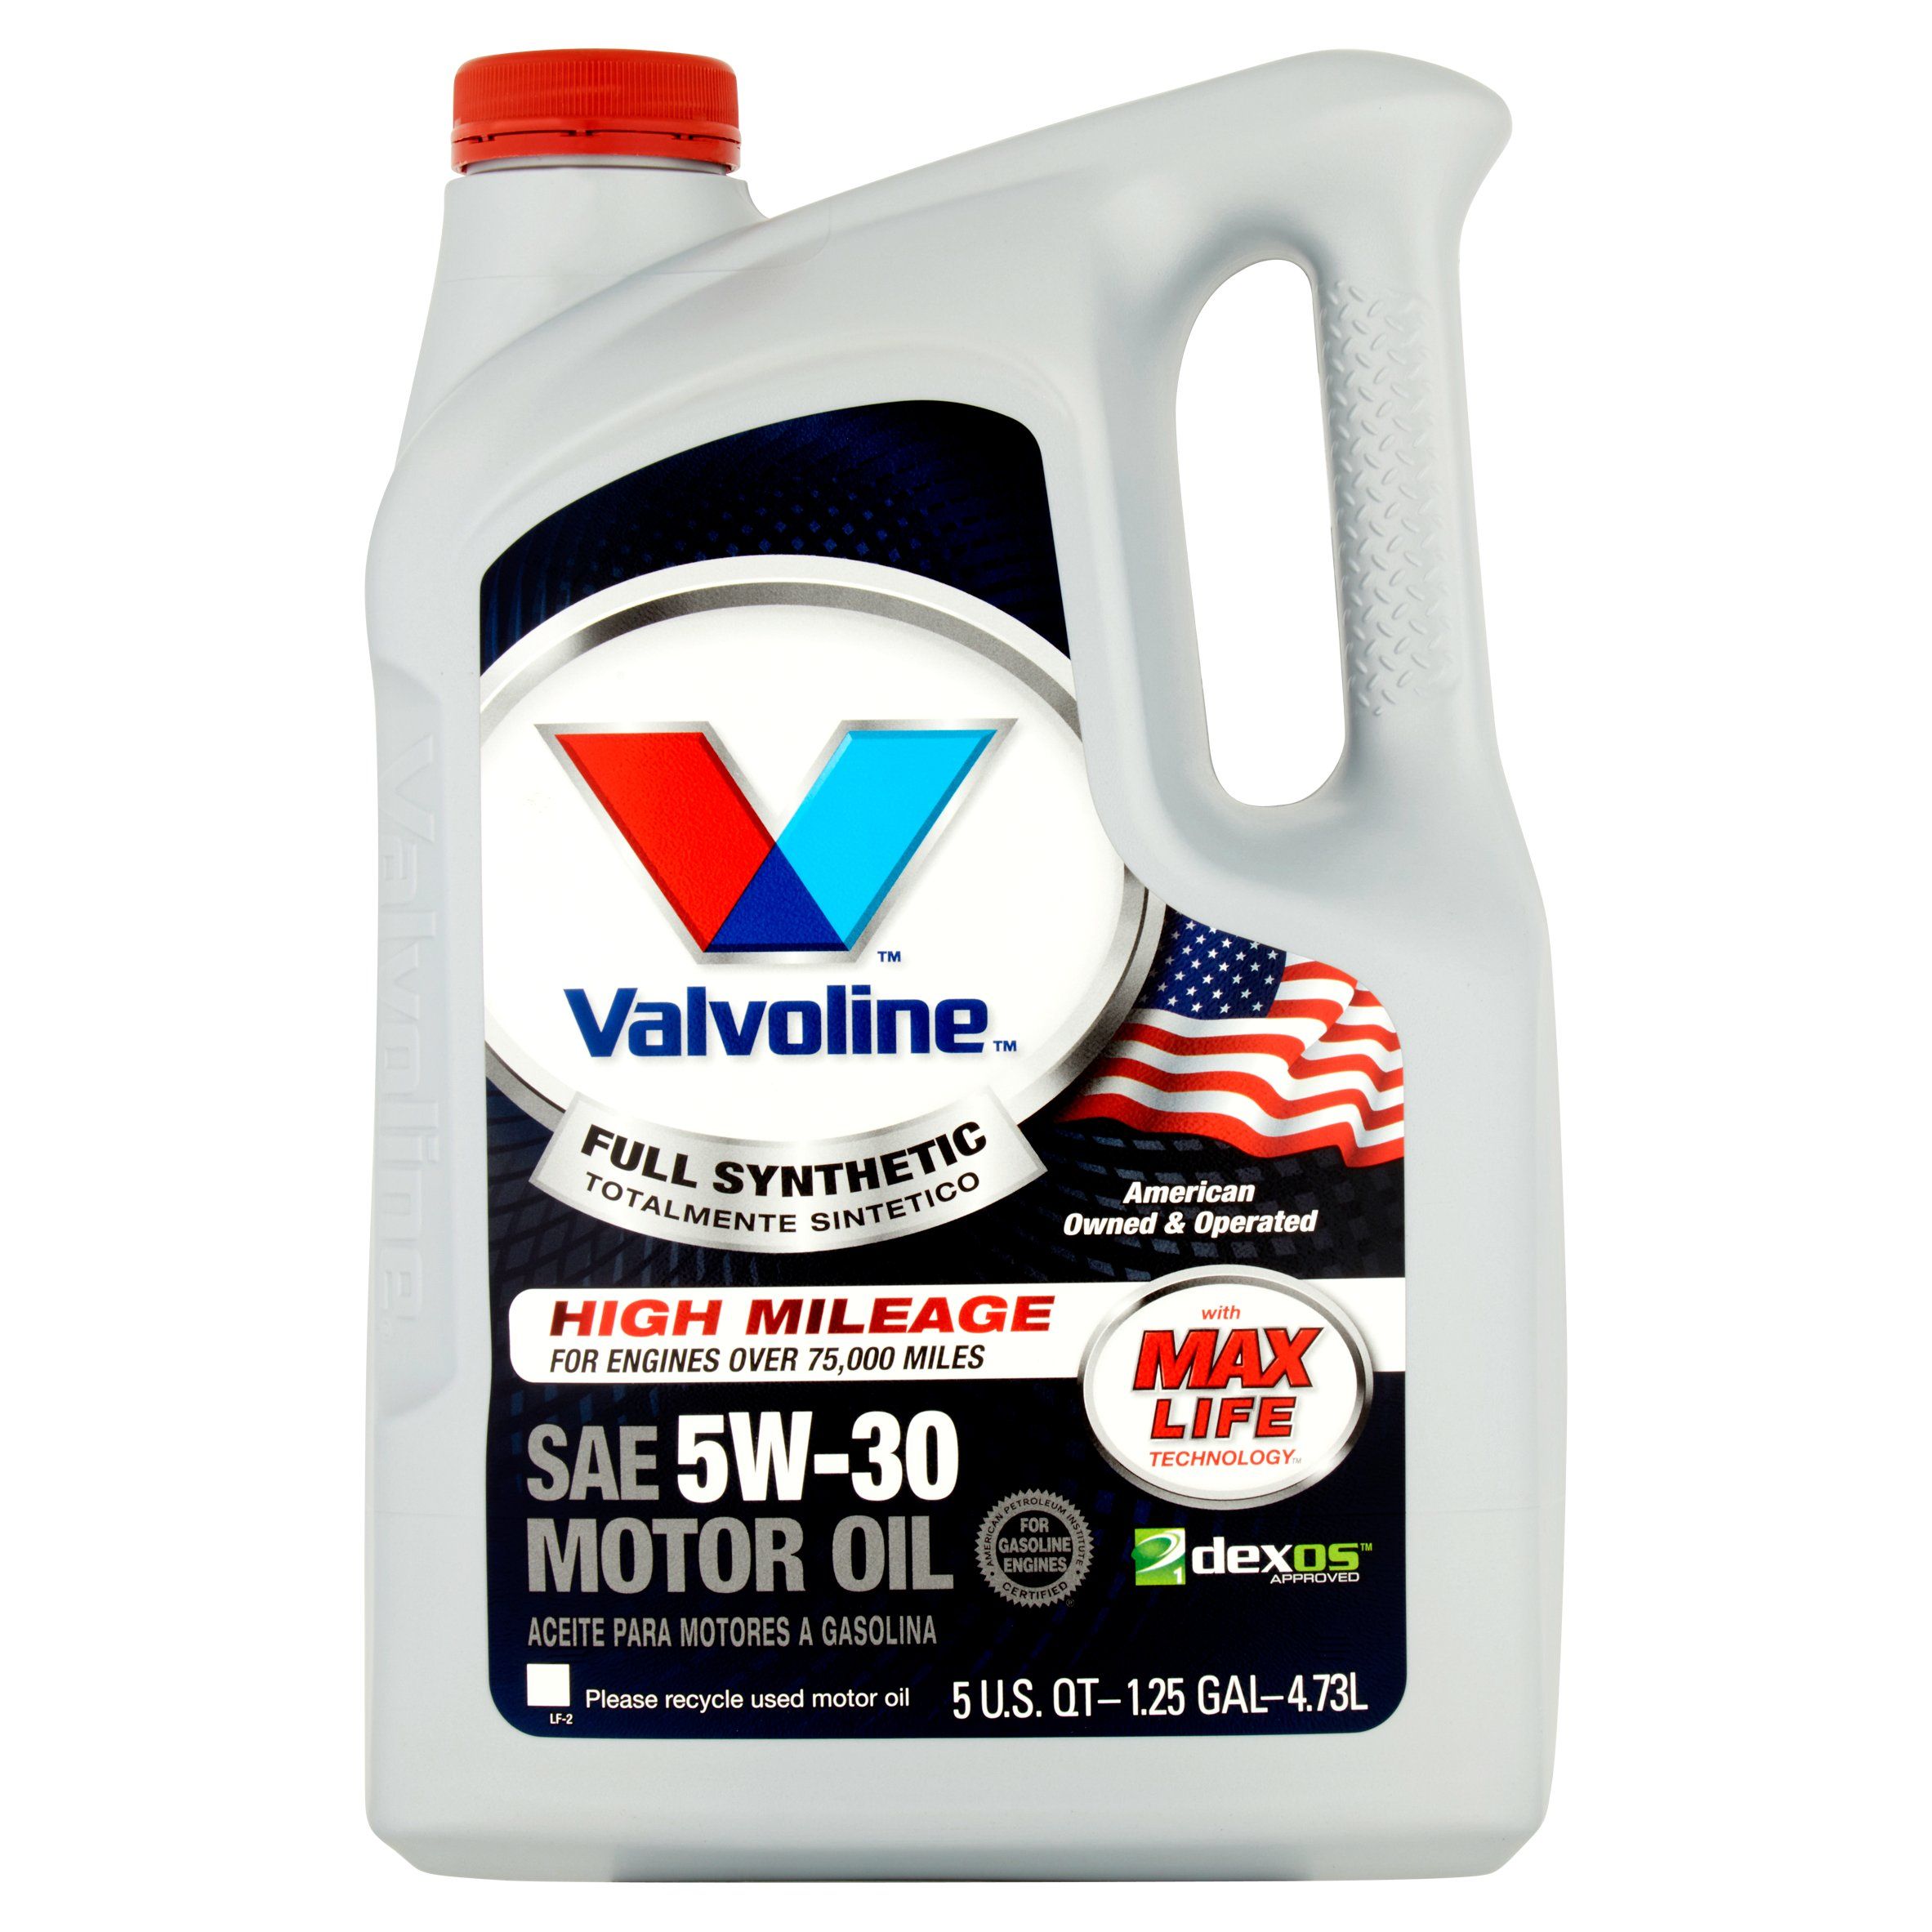 Valvoline Full Synthetic with Max Life Technology SAE 5W-30 Motor Oil 5qt